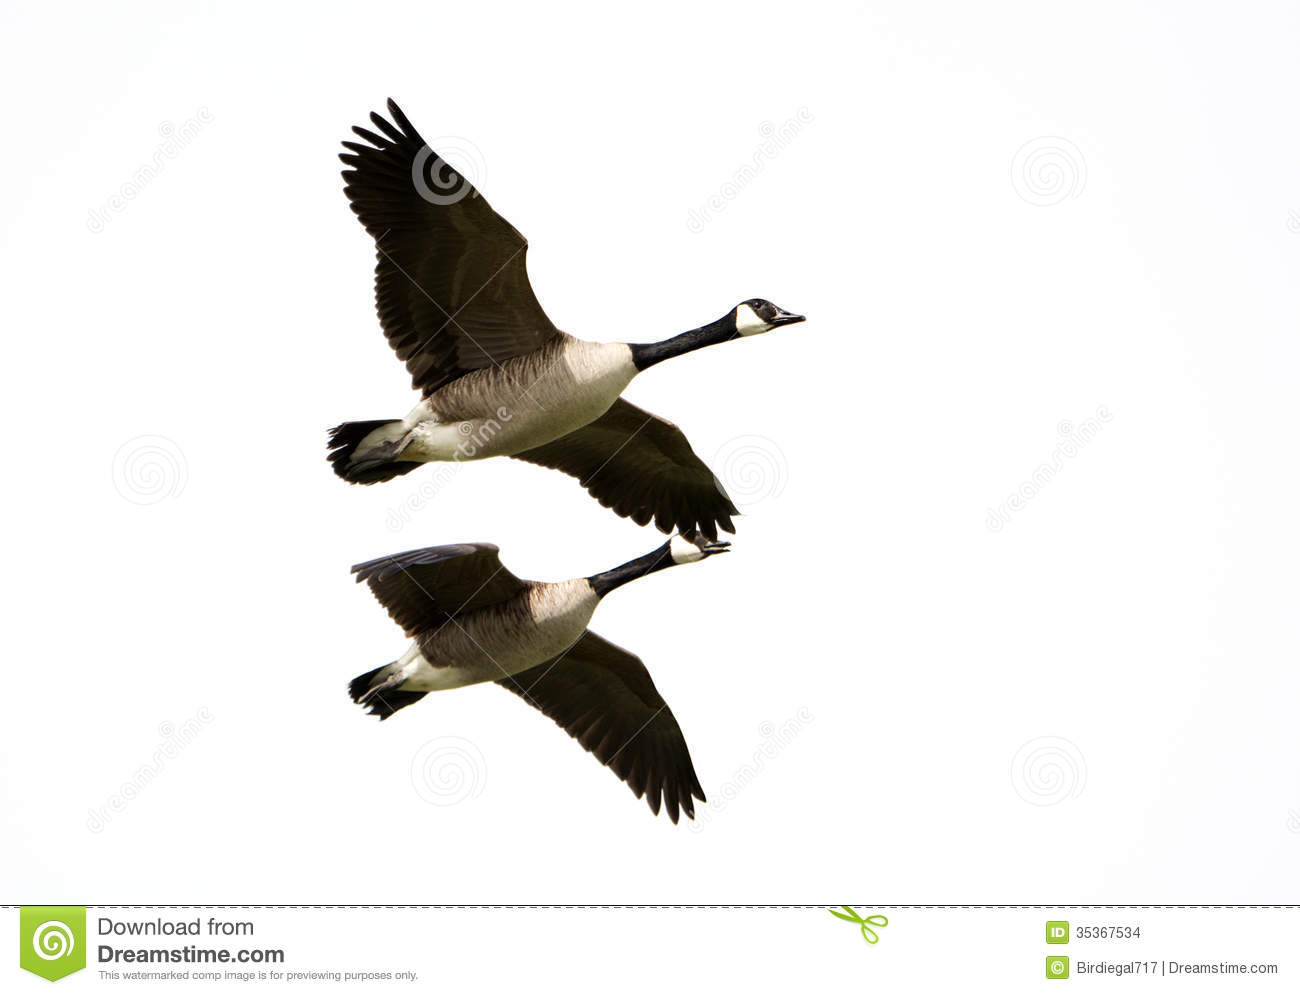 Geese Migration clipart #7, Download drawings